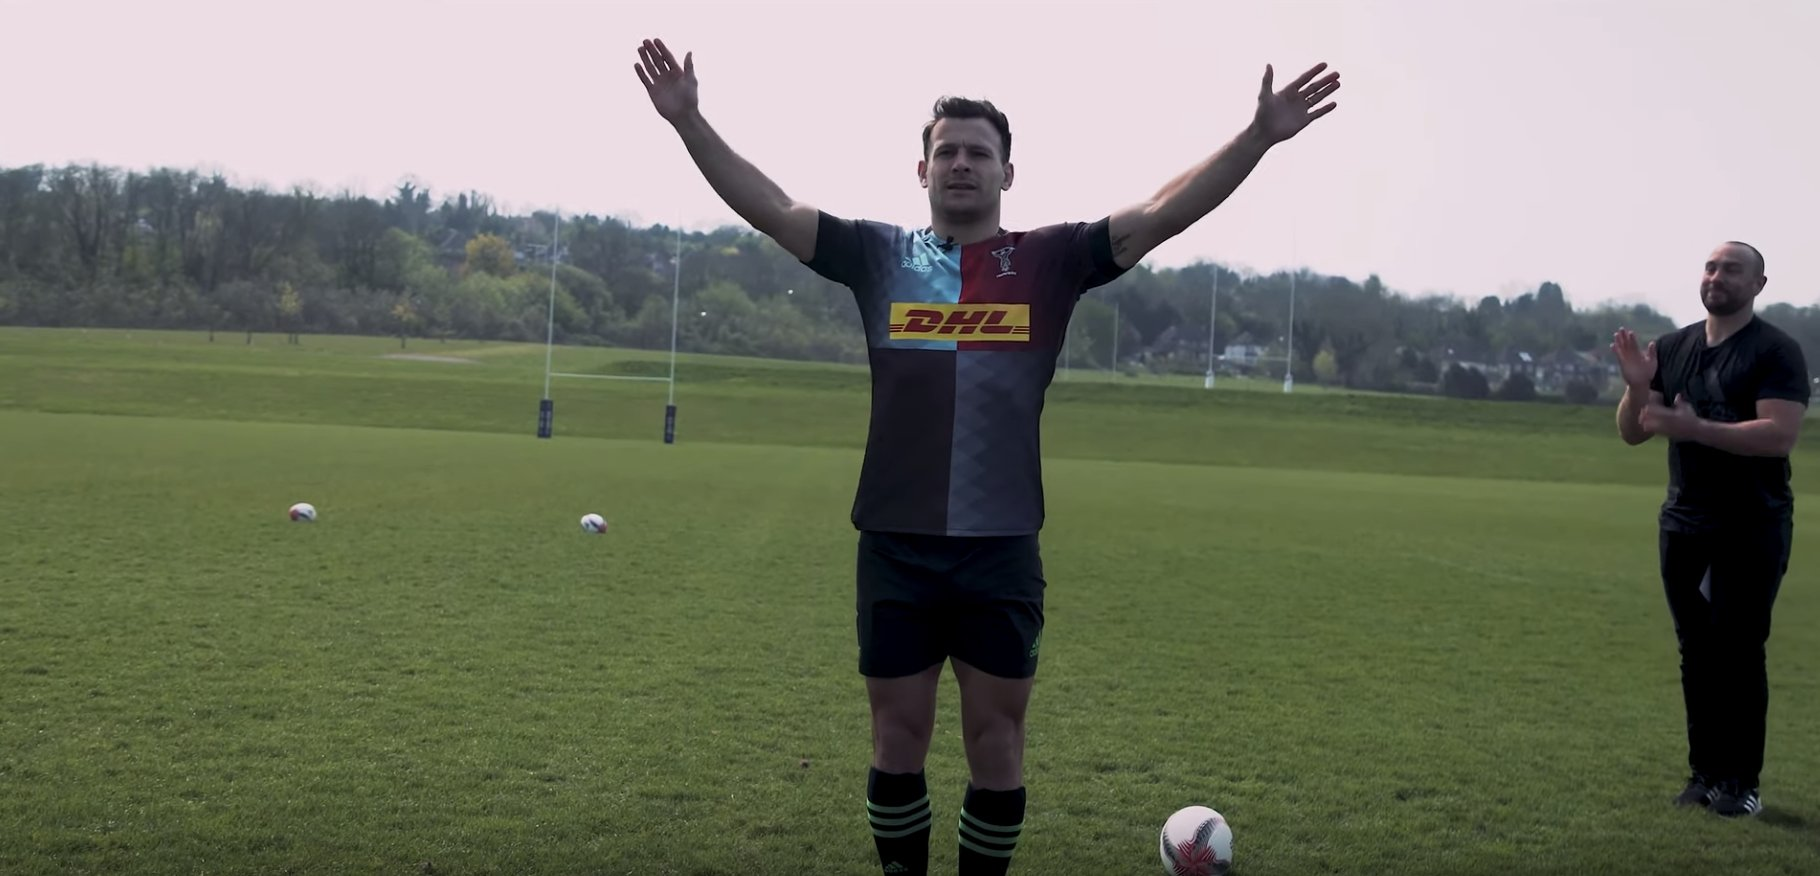 Danny Care goes through his best celebrations in rugby ever